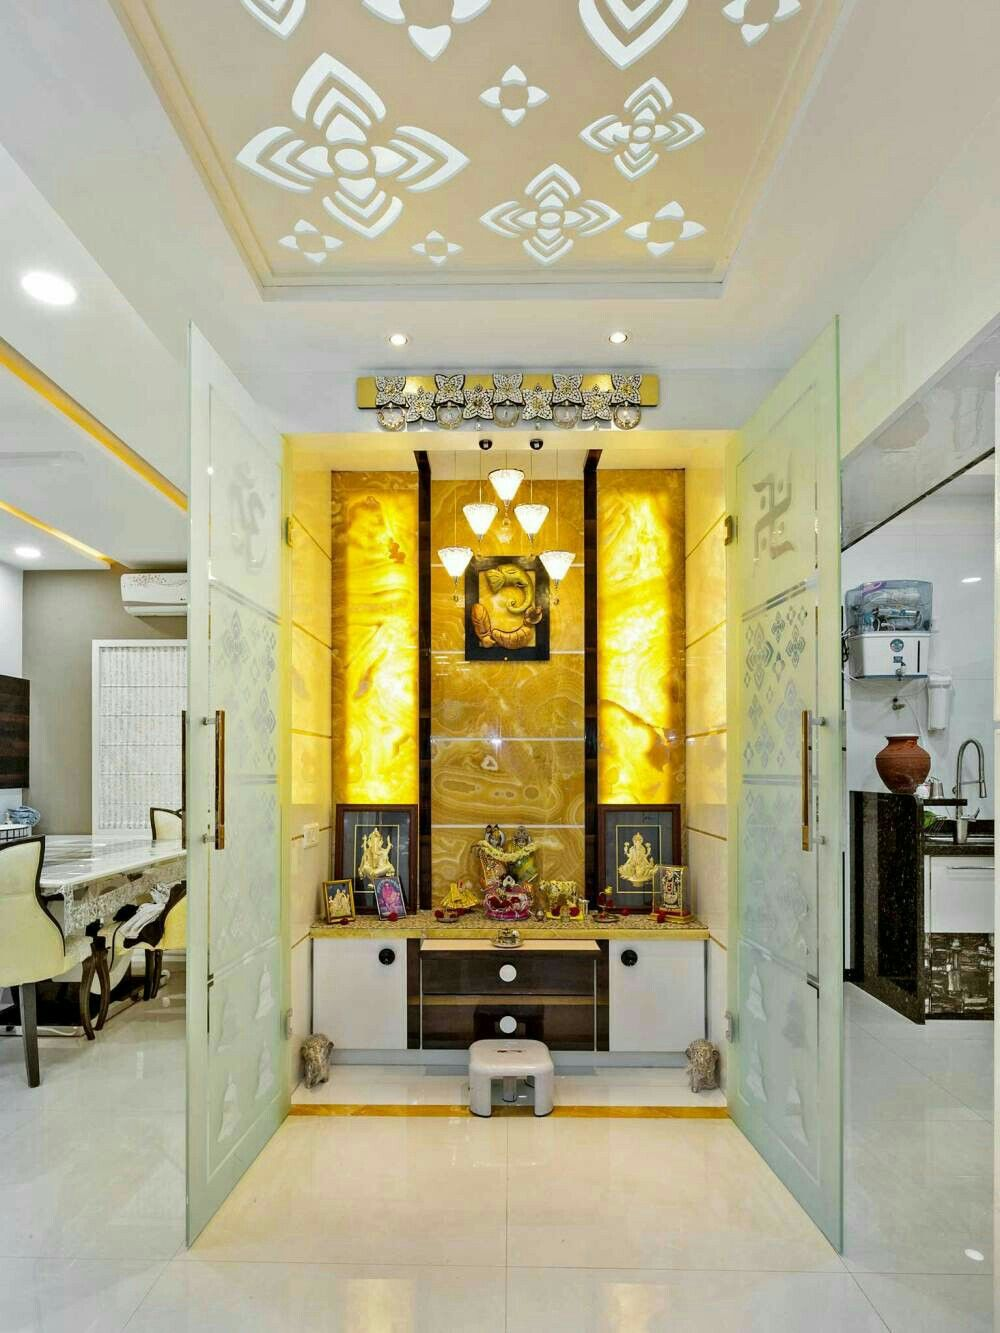 Image Result For Mantras On Pooja Room Door: 0a02f5bcaa4f035b7c5b9eb01e15313f.jpg (1000×1333)